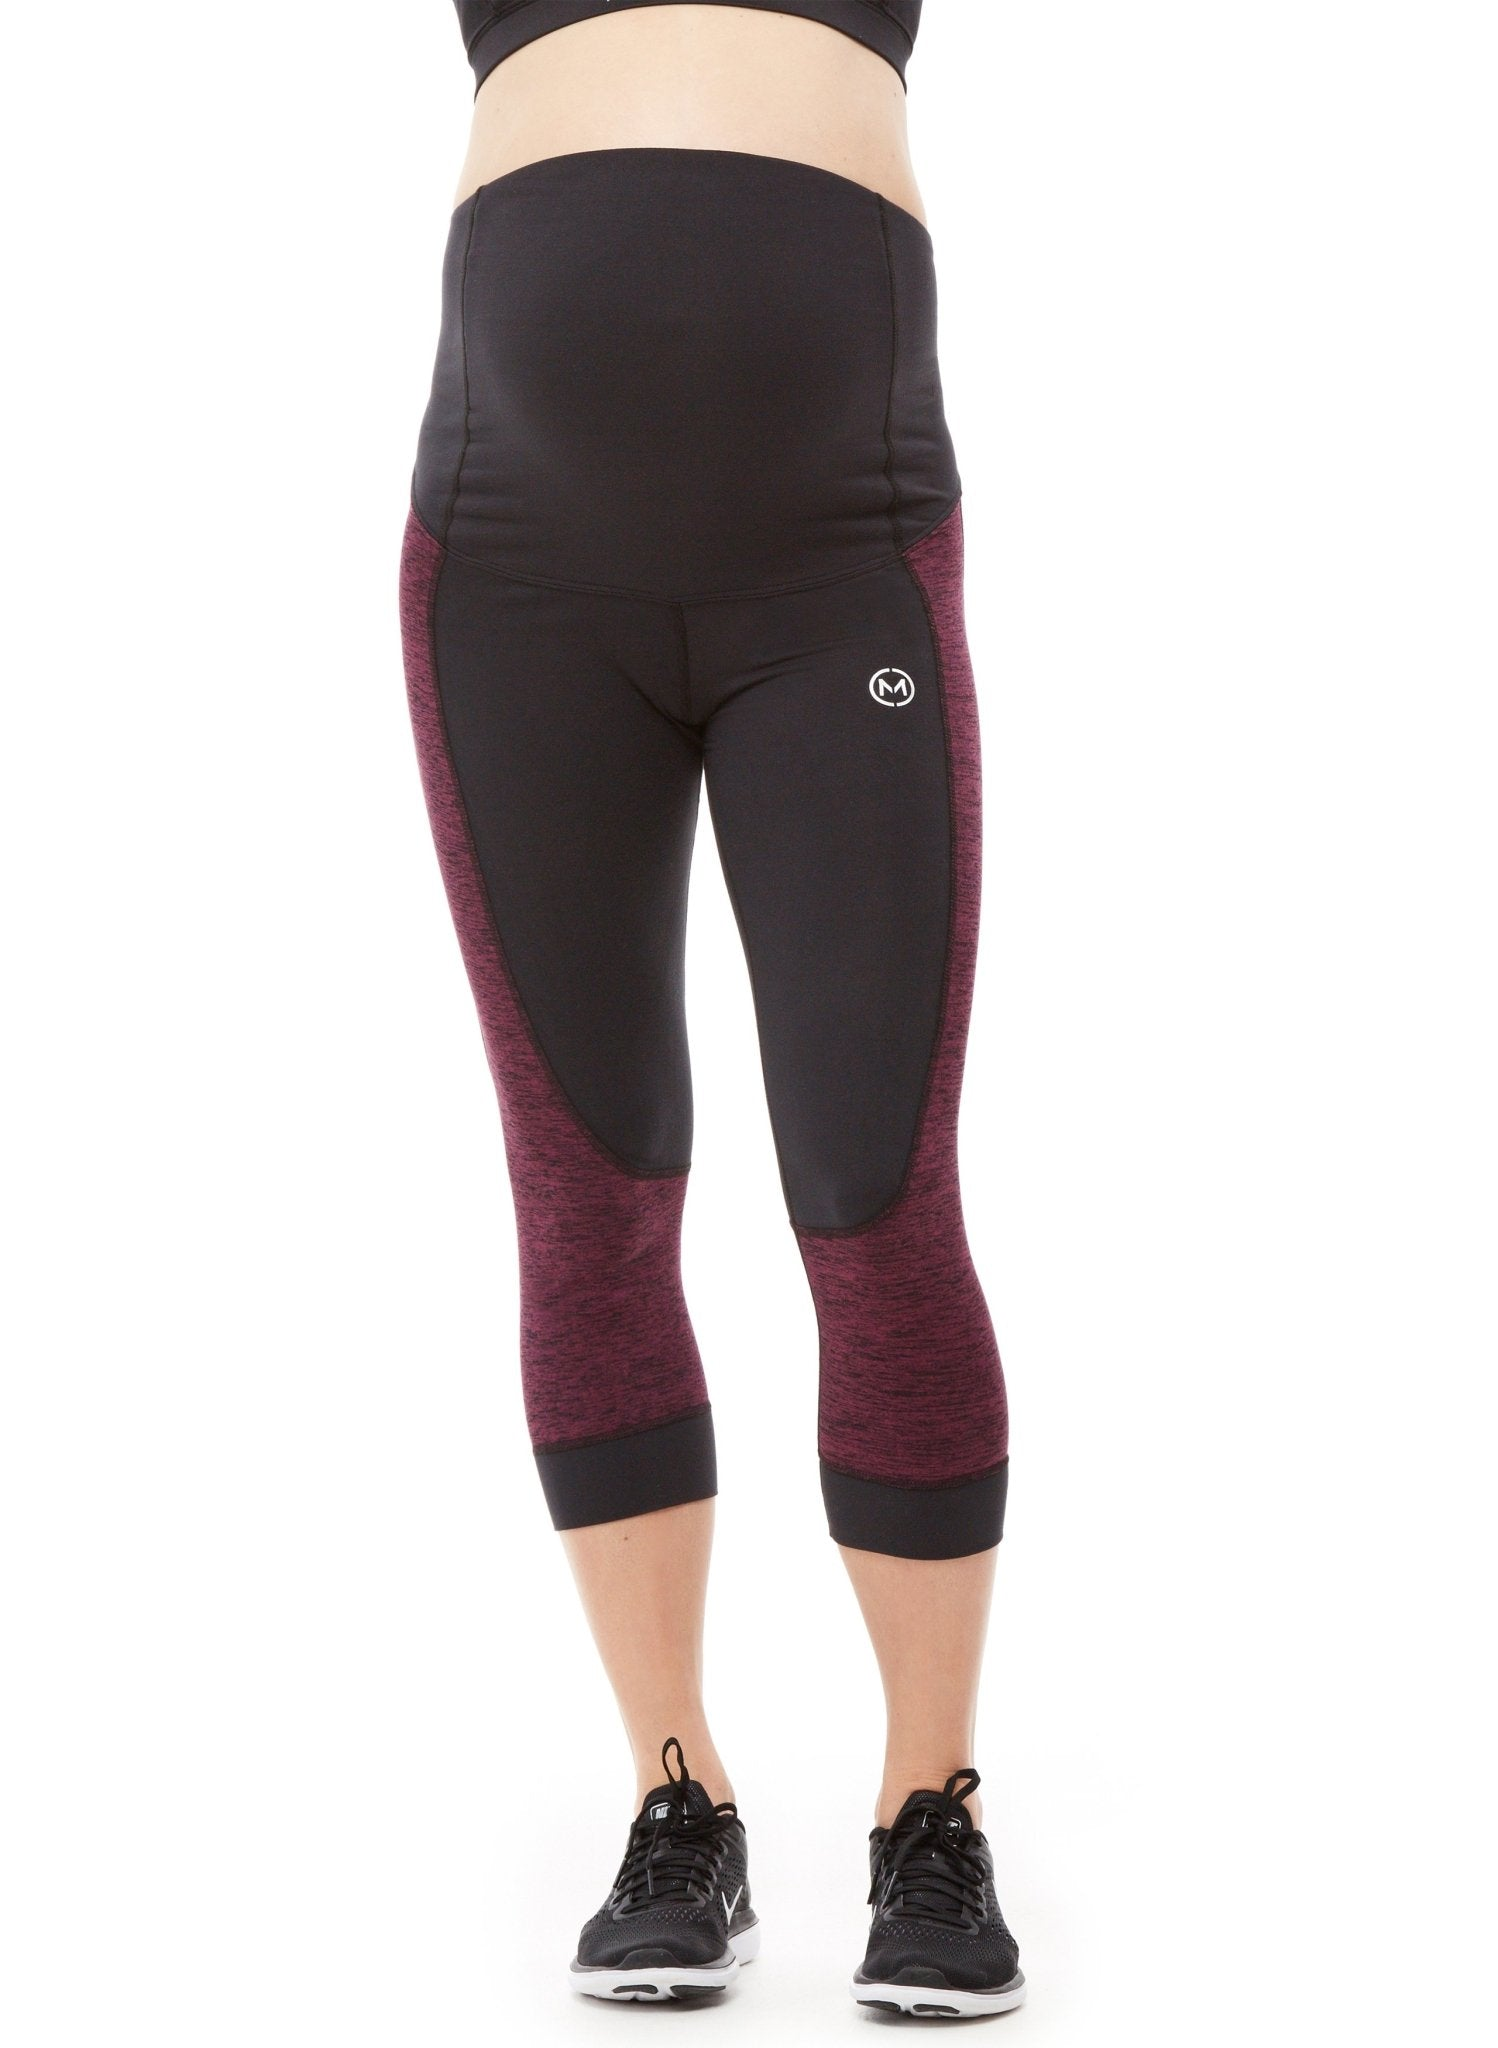 Flex 3/4 High Waist Maternity Legging - Black/Raisin - Mums and Bumps